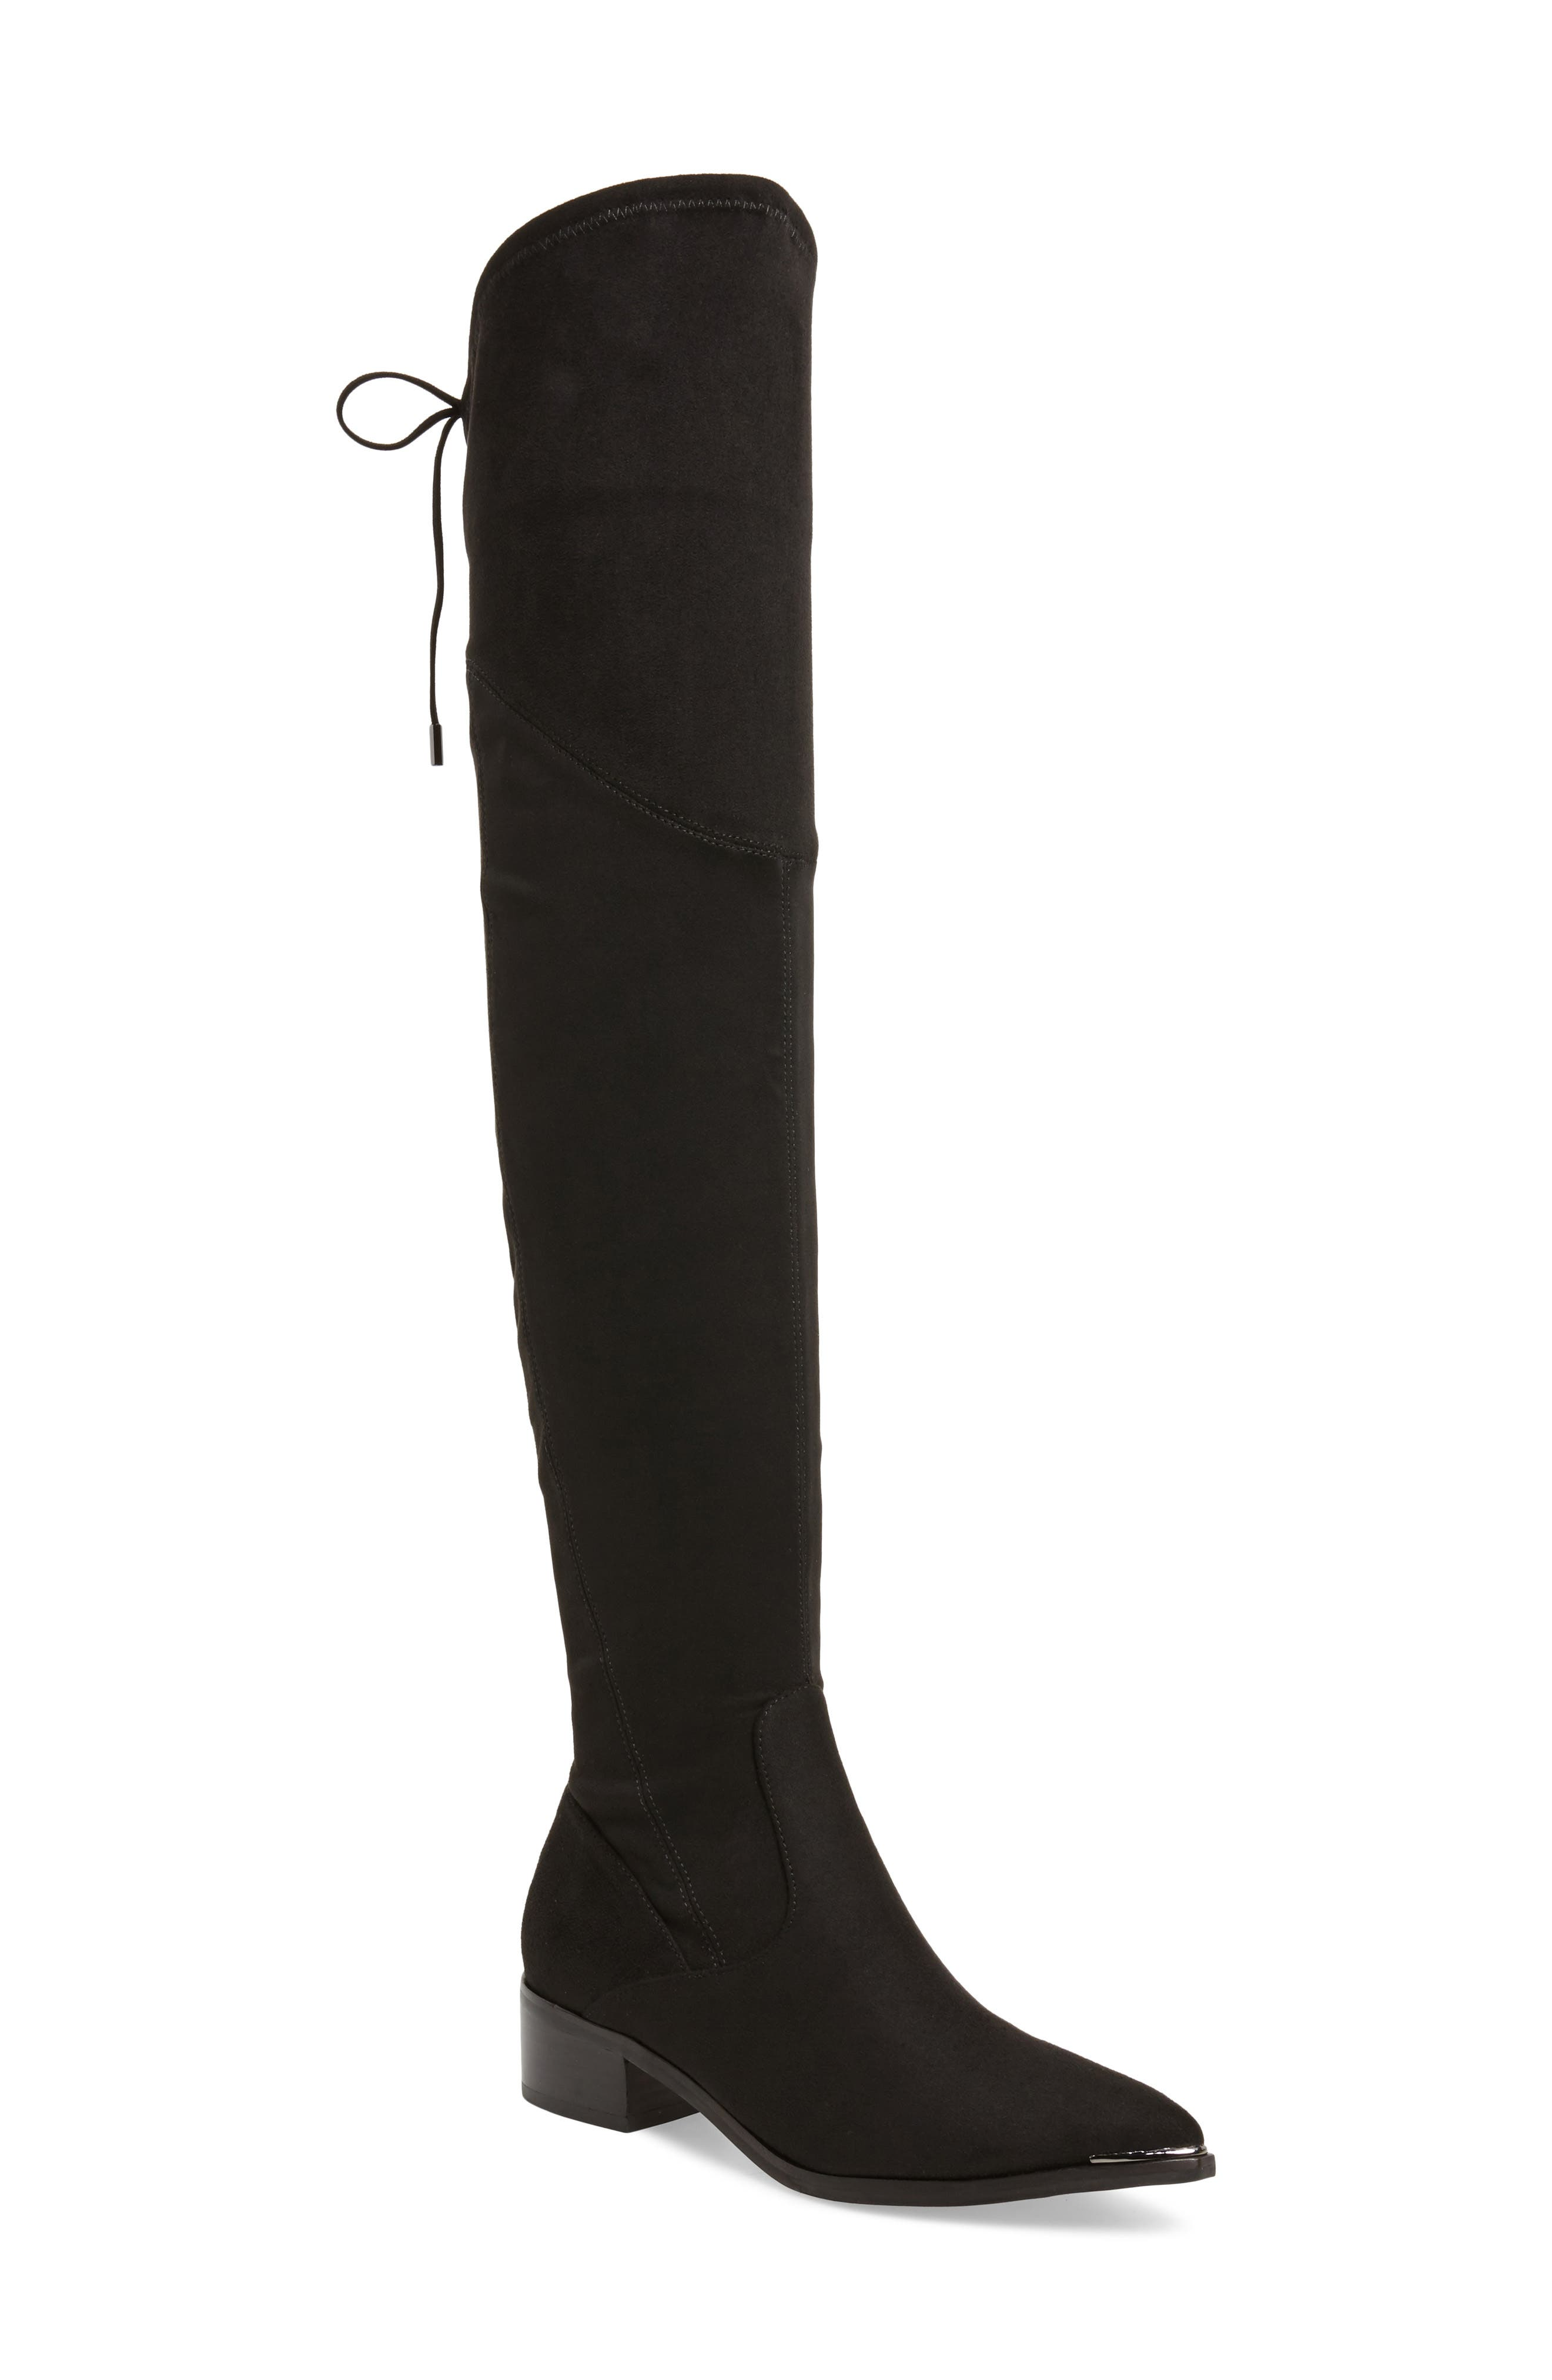 Yuna Over the Knee Boot,                             Main thumbnail 1, color,                             BLACK FAUX SUEDE